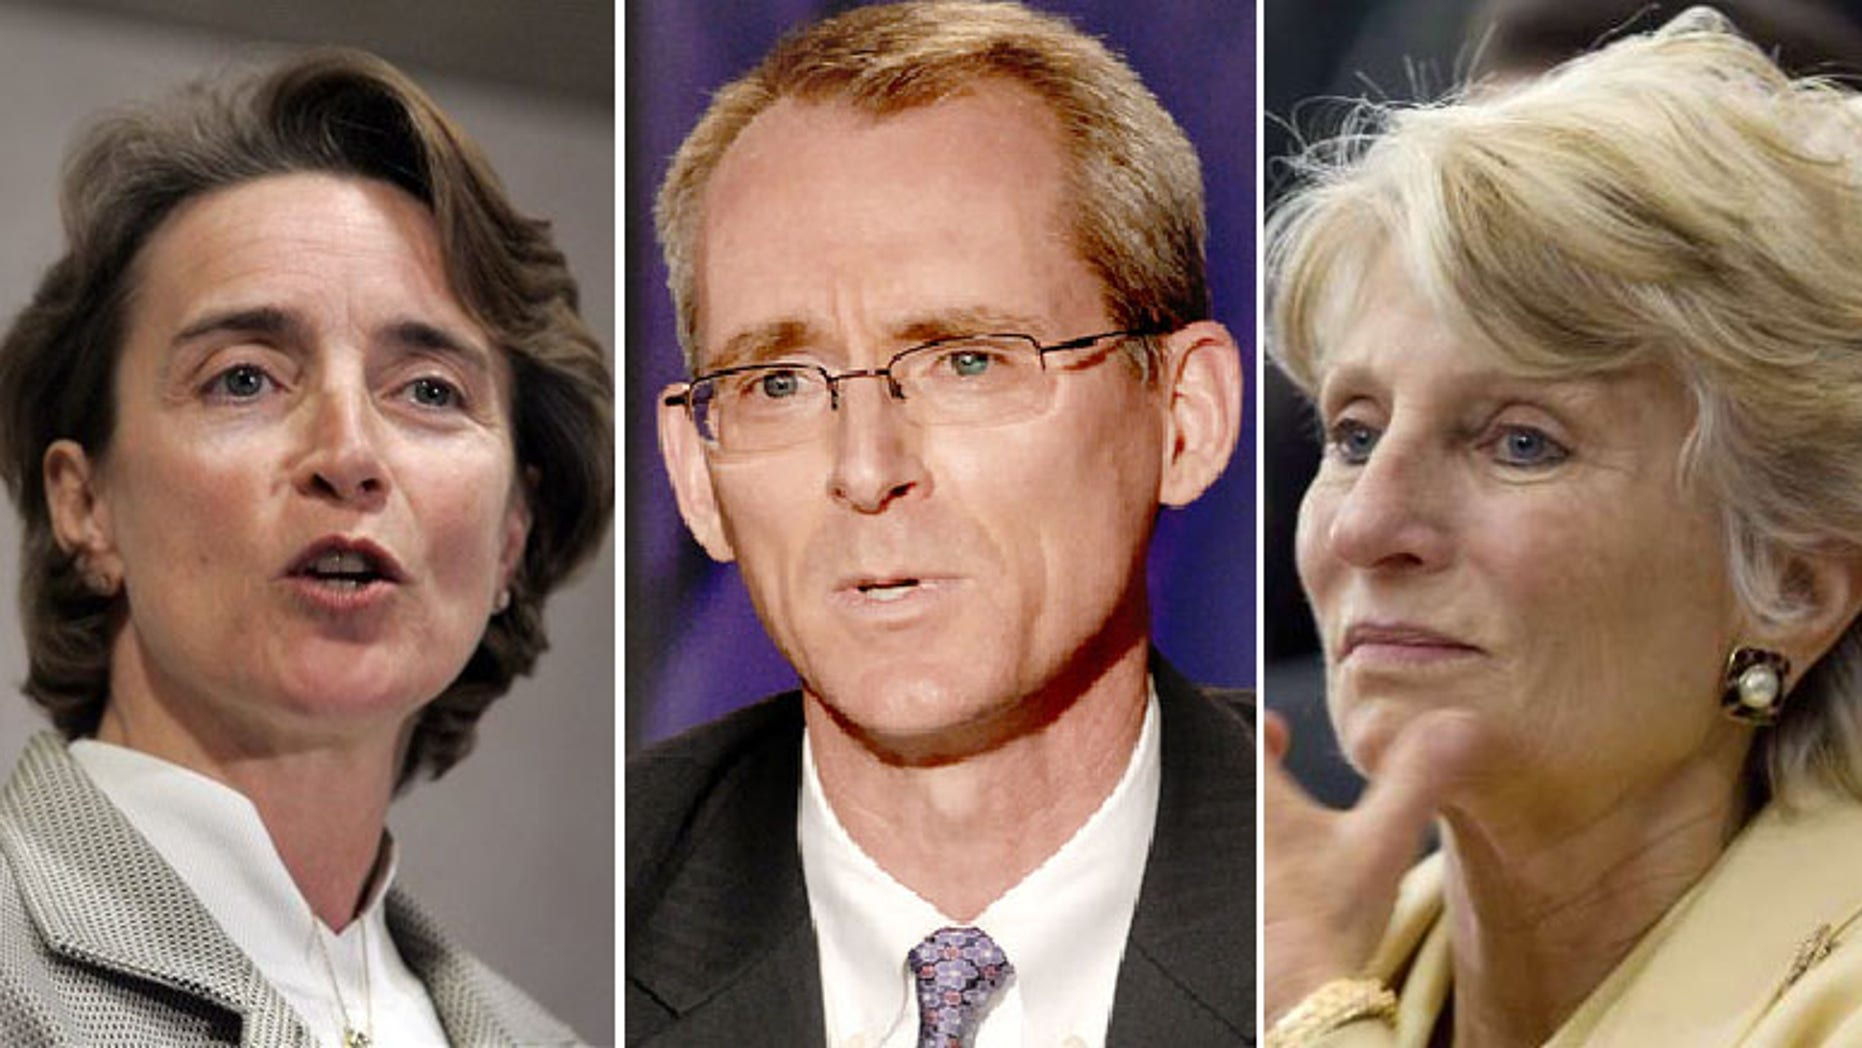 Sen. Blanche Lincoln, (l), Rep. Bob Inglis, (c), and Rep. Jane Harman, (r), are among the incumbents facing primary challengers June 8. (AP)